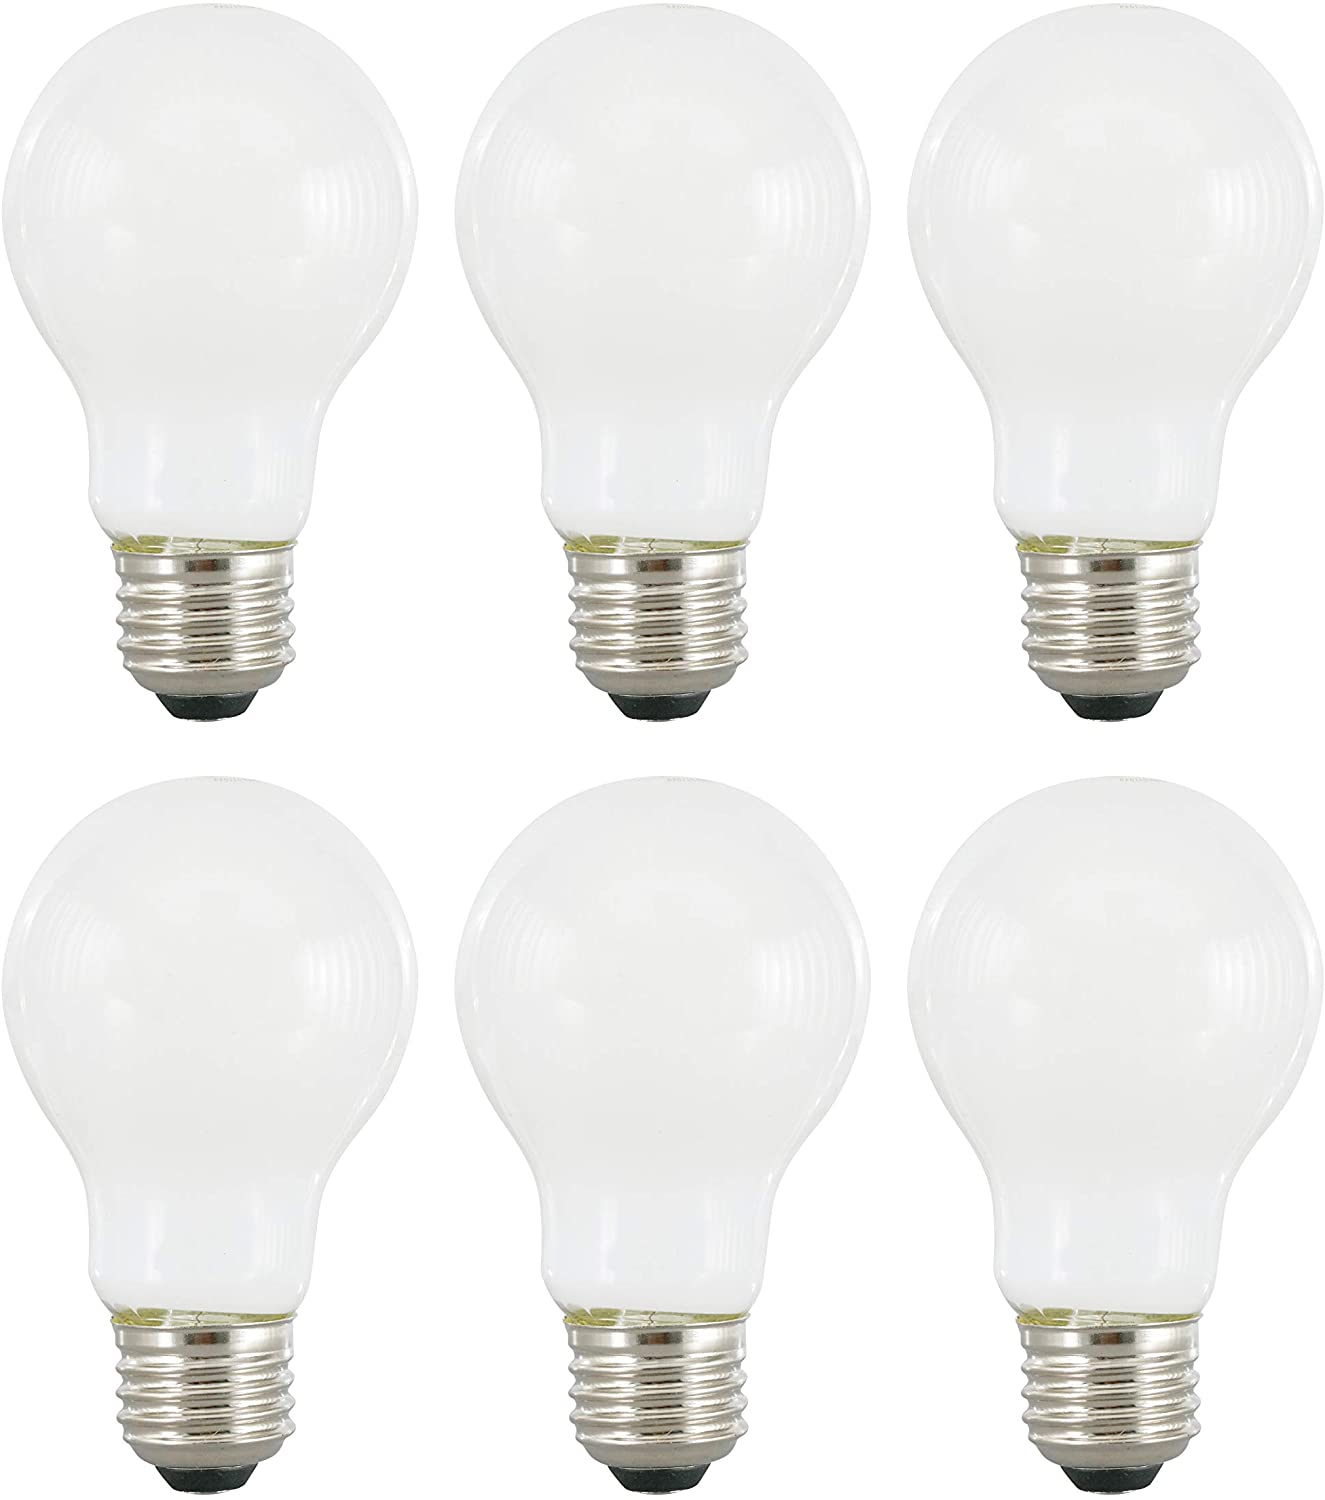 SYLVANIA General Lighting 40813, Soft White SYLVANIA LED A19 Natural Light Series, 60W Equivalent, Efficient 8W, Dimmable, Frosted Finish, 2700K Color Temperature, 6 Pack